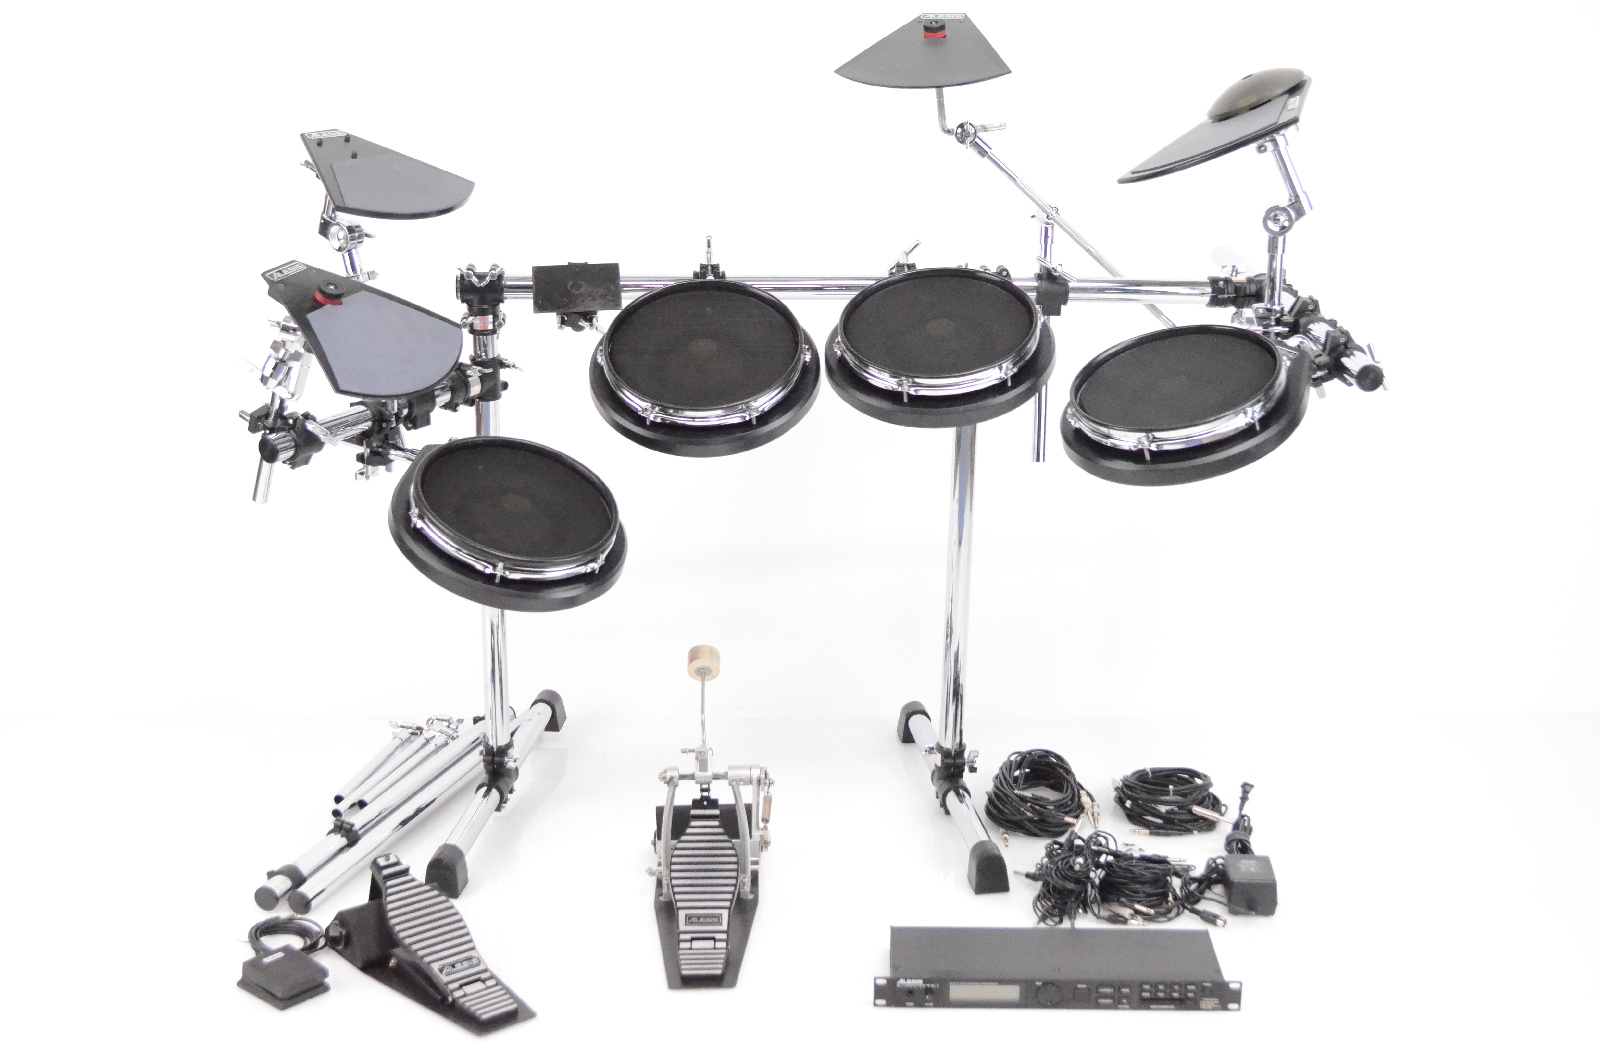 Alesis DM Pro Electronic Drum Set w/ Module Cables Pedals & Hardware #31765